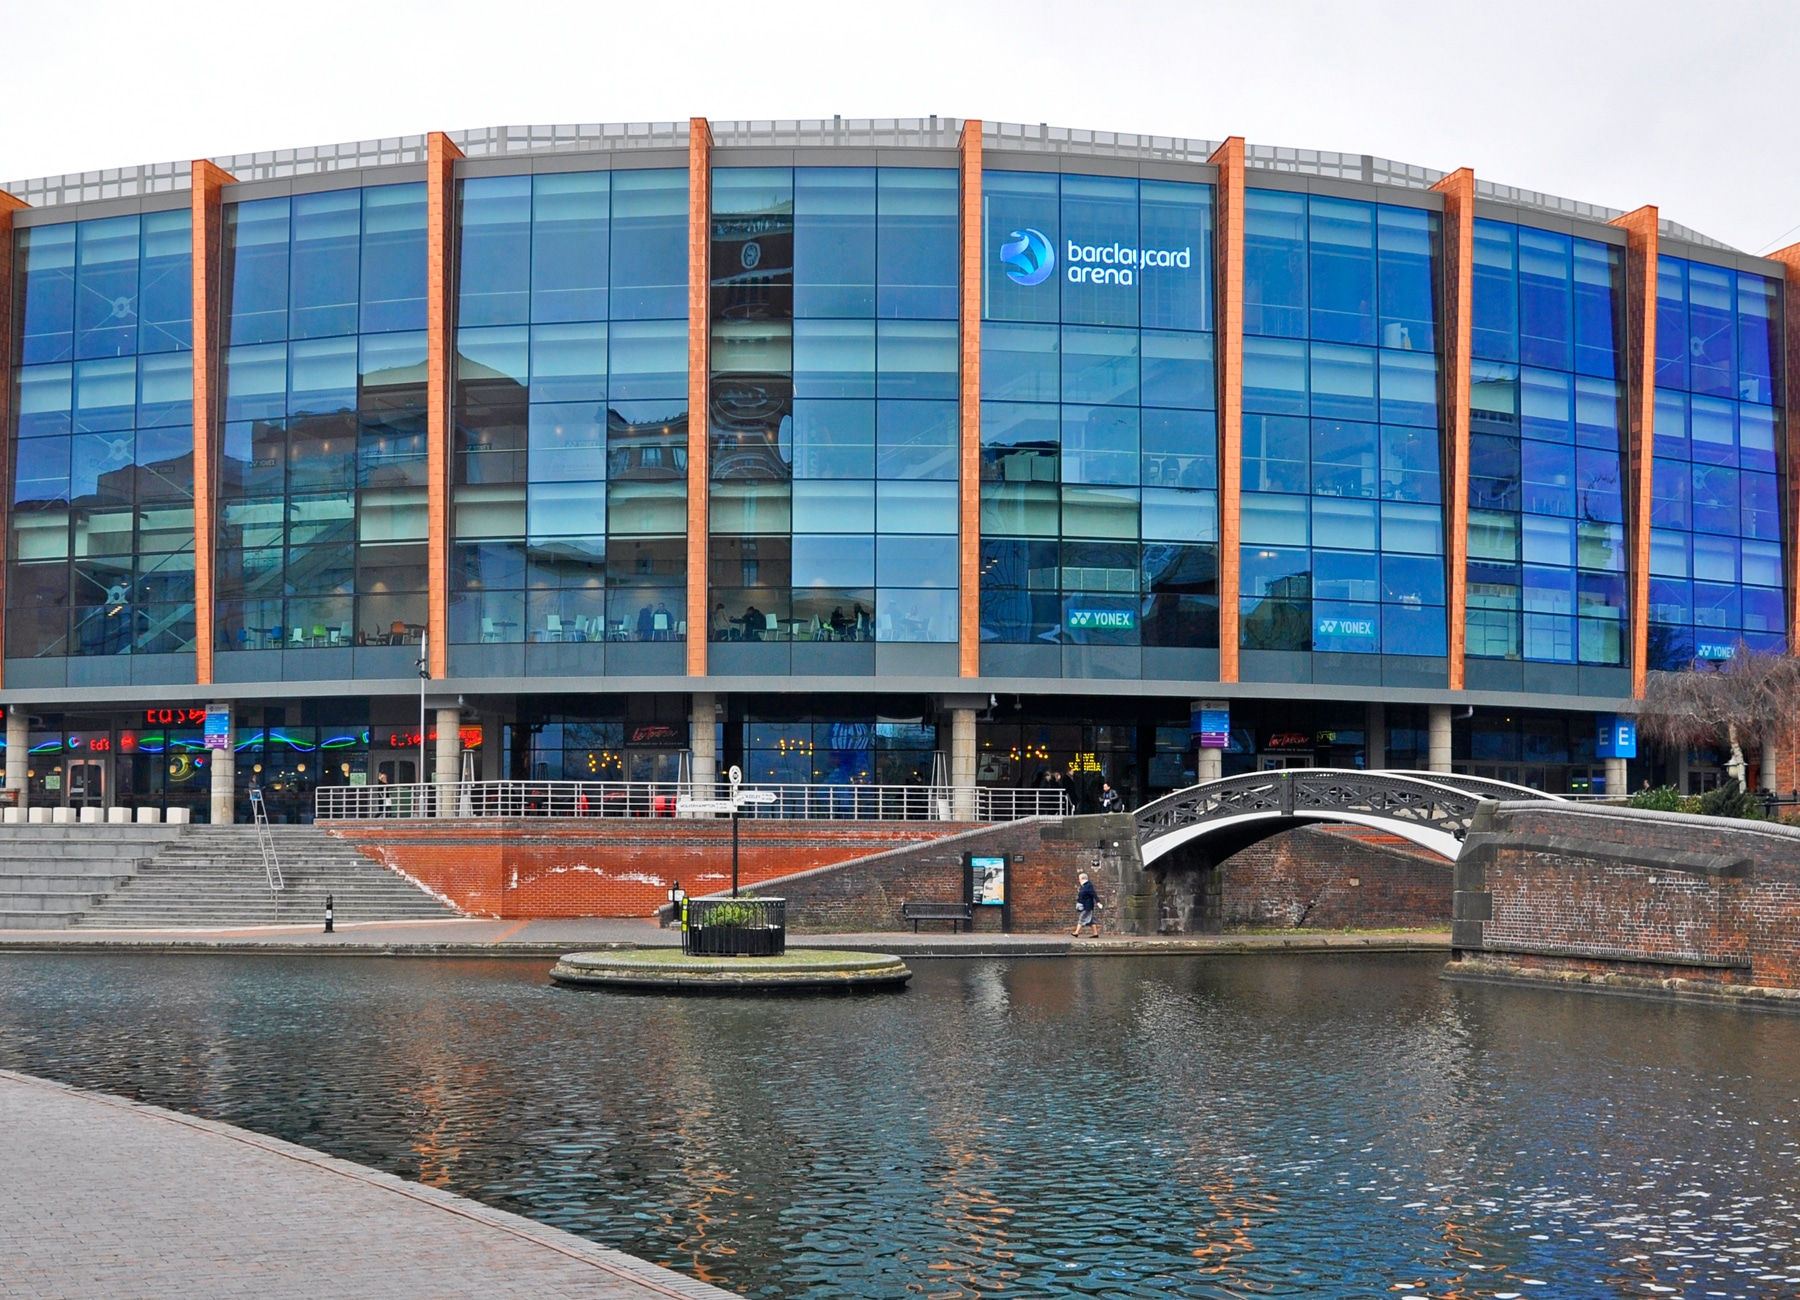 NIA Barclaycard Arena - Copper Shingles - culture and leisure